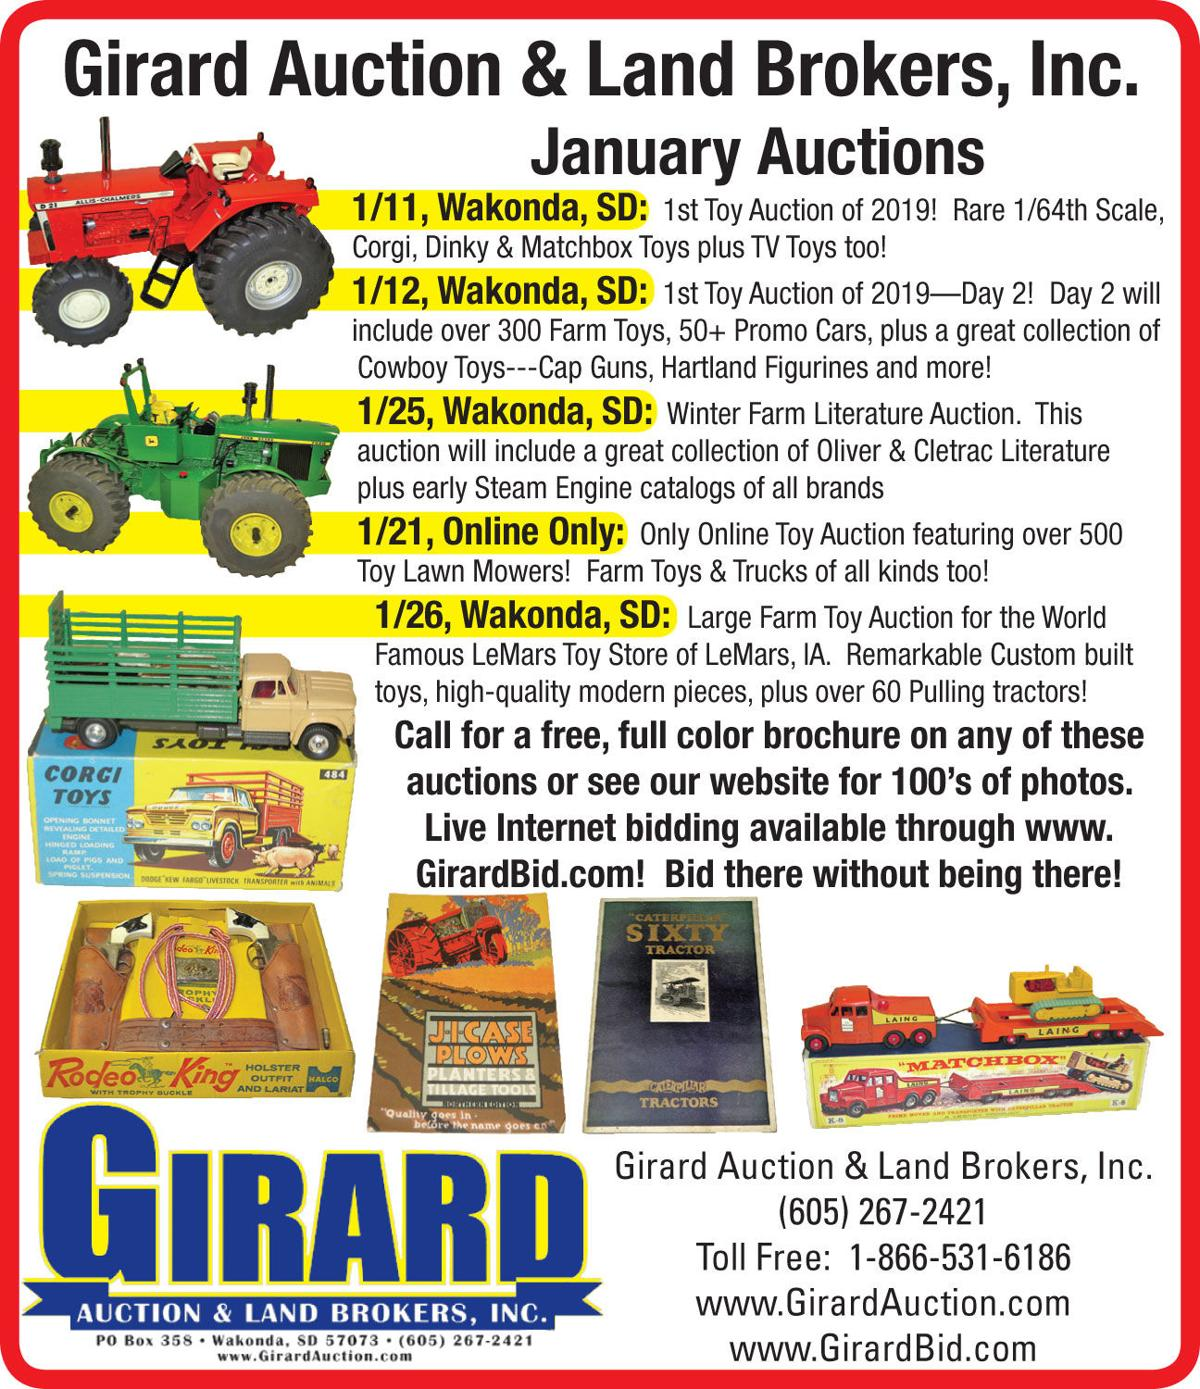 Toy auction, 1/64th scale, Matchbox, TV toys